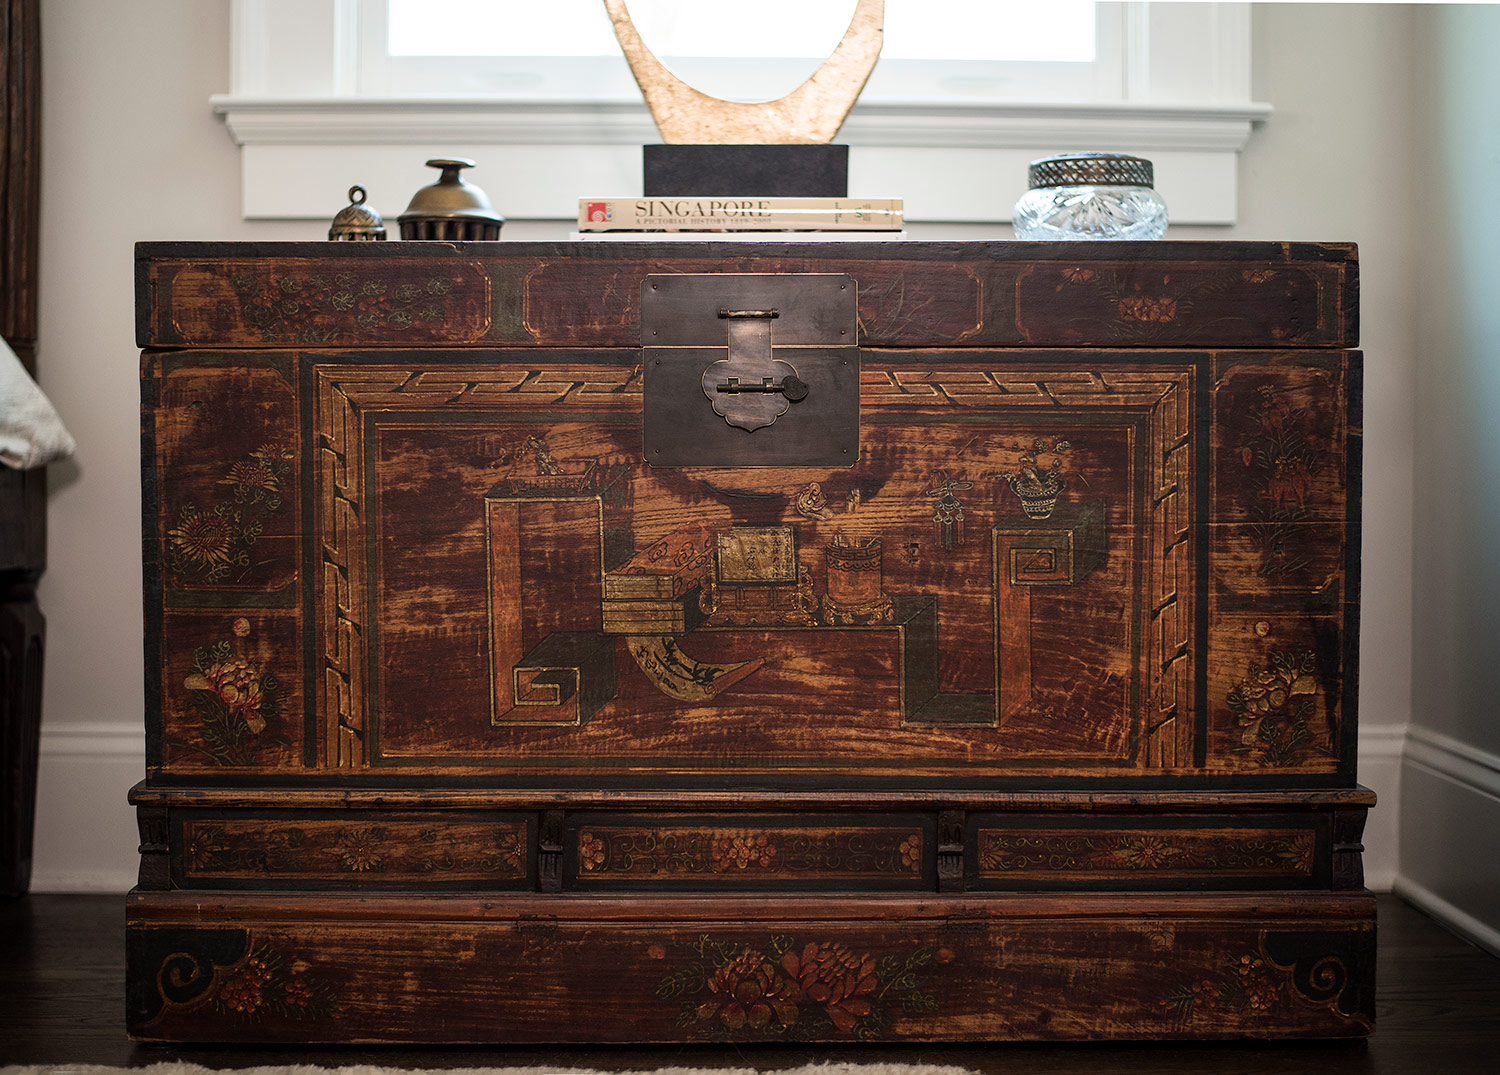 Antique Chinese trunk used as a night stand in master bedroom